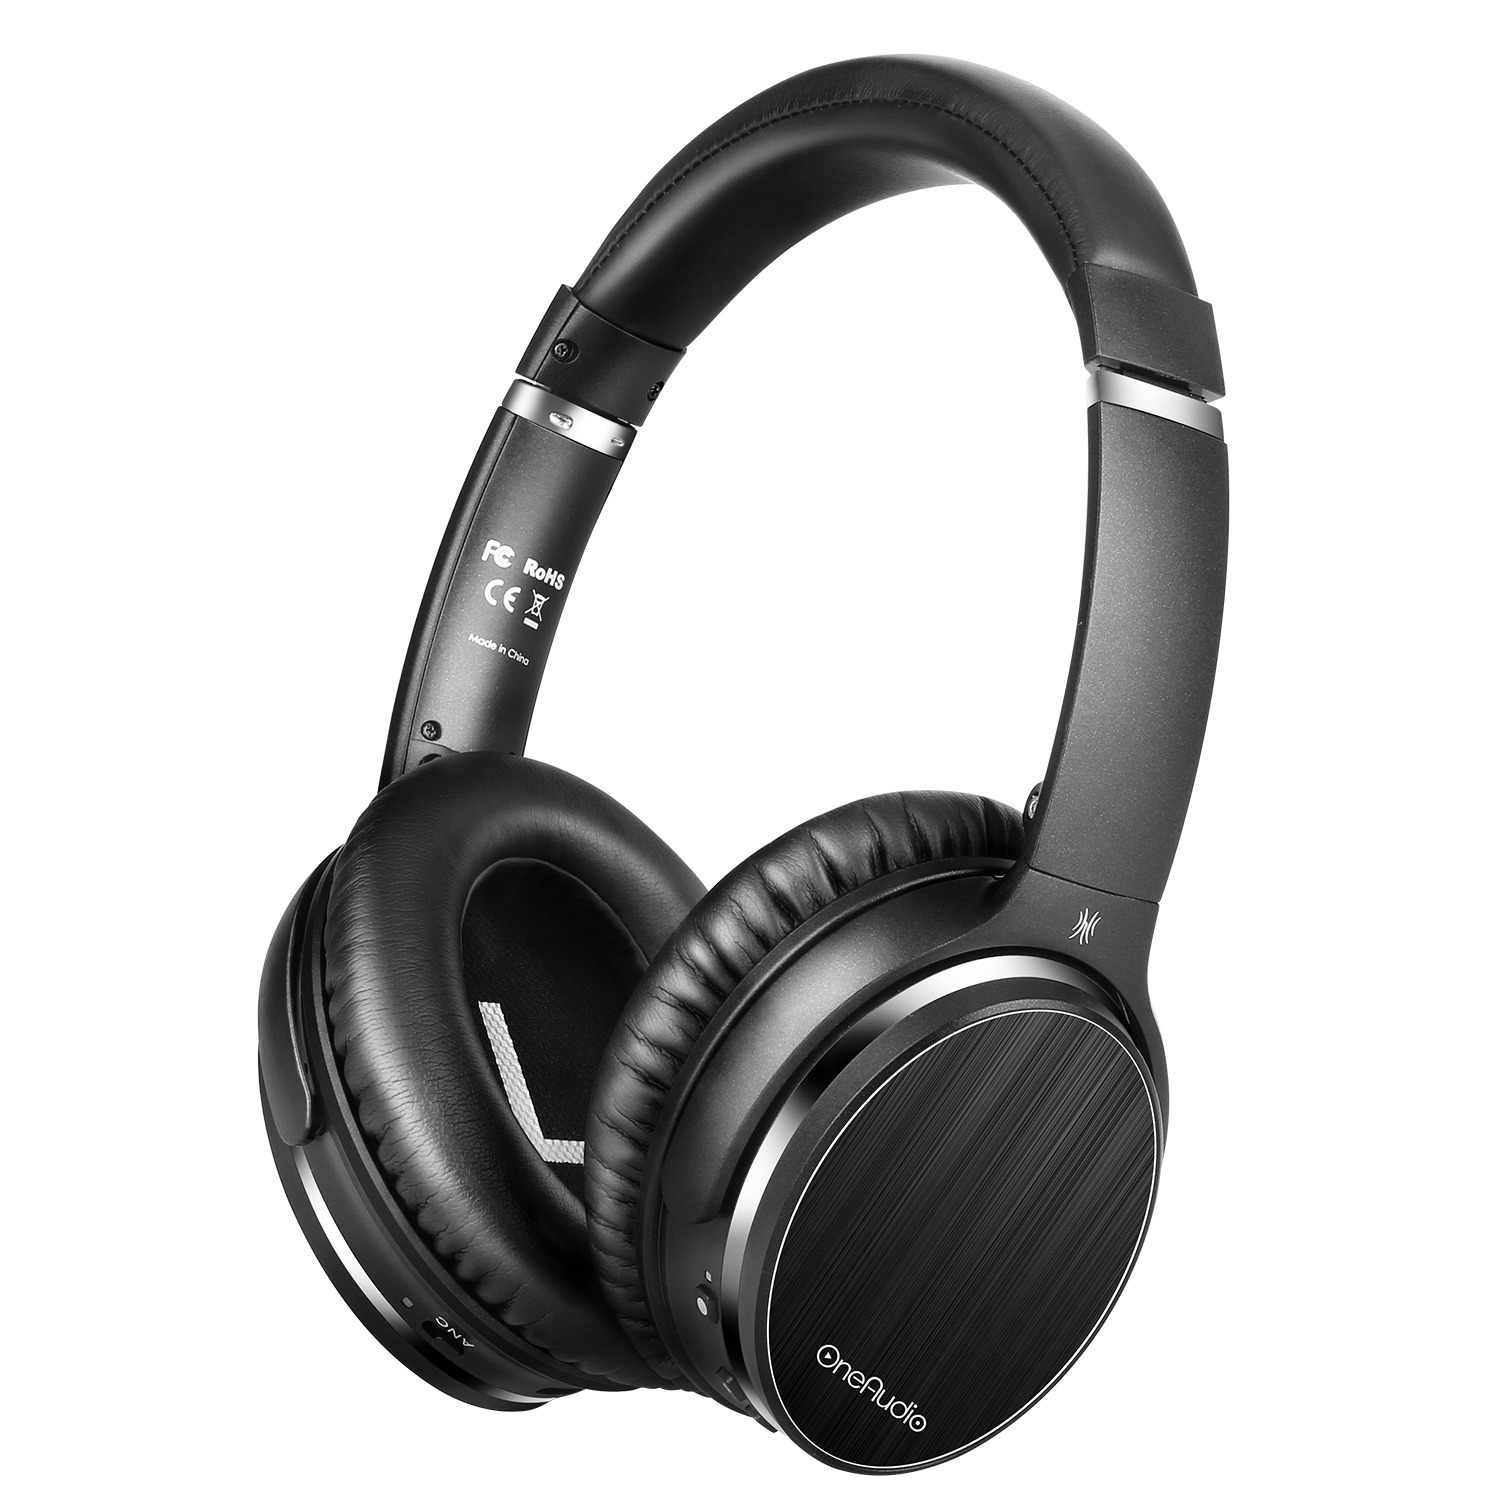 53a5f38cbab OneAudio A3 Active Noise Cancelling Headphones Bluetooth Wireless Hifi Over  Ear Headset Stereo ANC Foldable Headphone